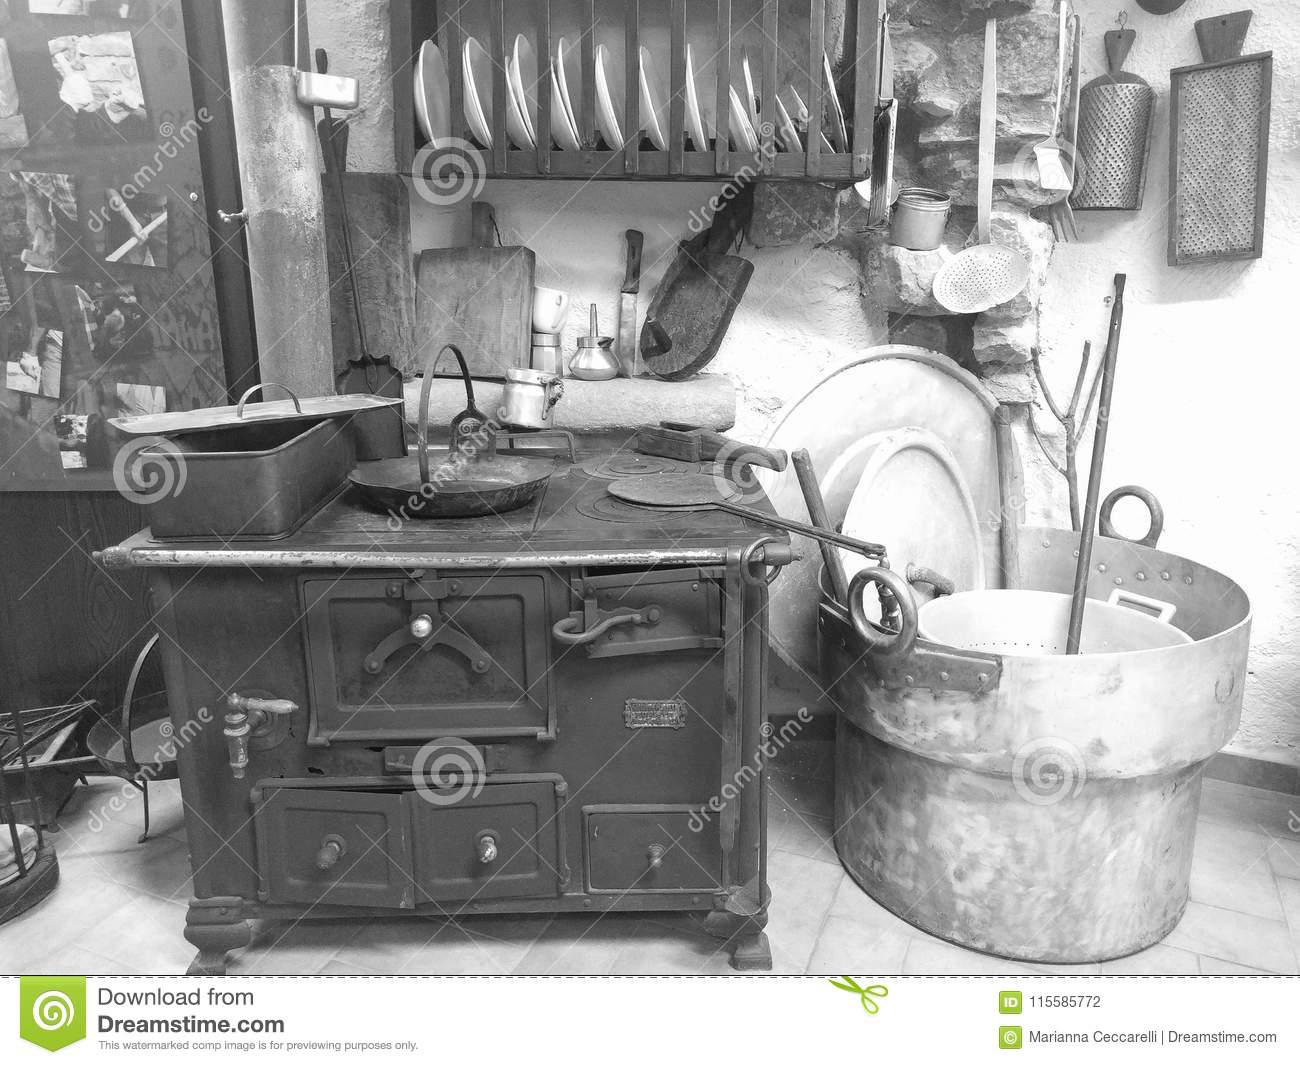 Italy-Tuscany-Minucciano-LU: Ancient kitchen, on display, inside the museum of Minucciano